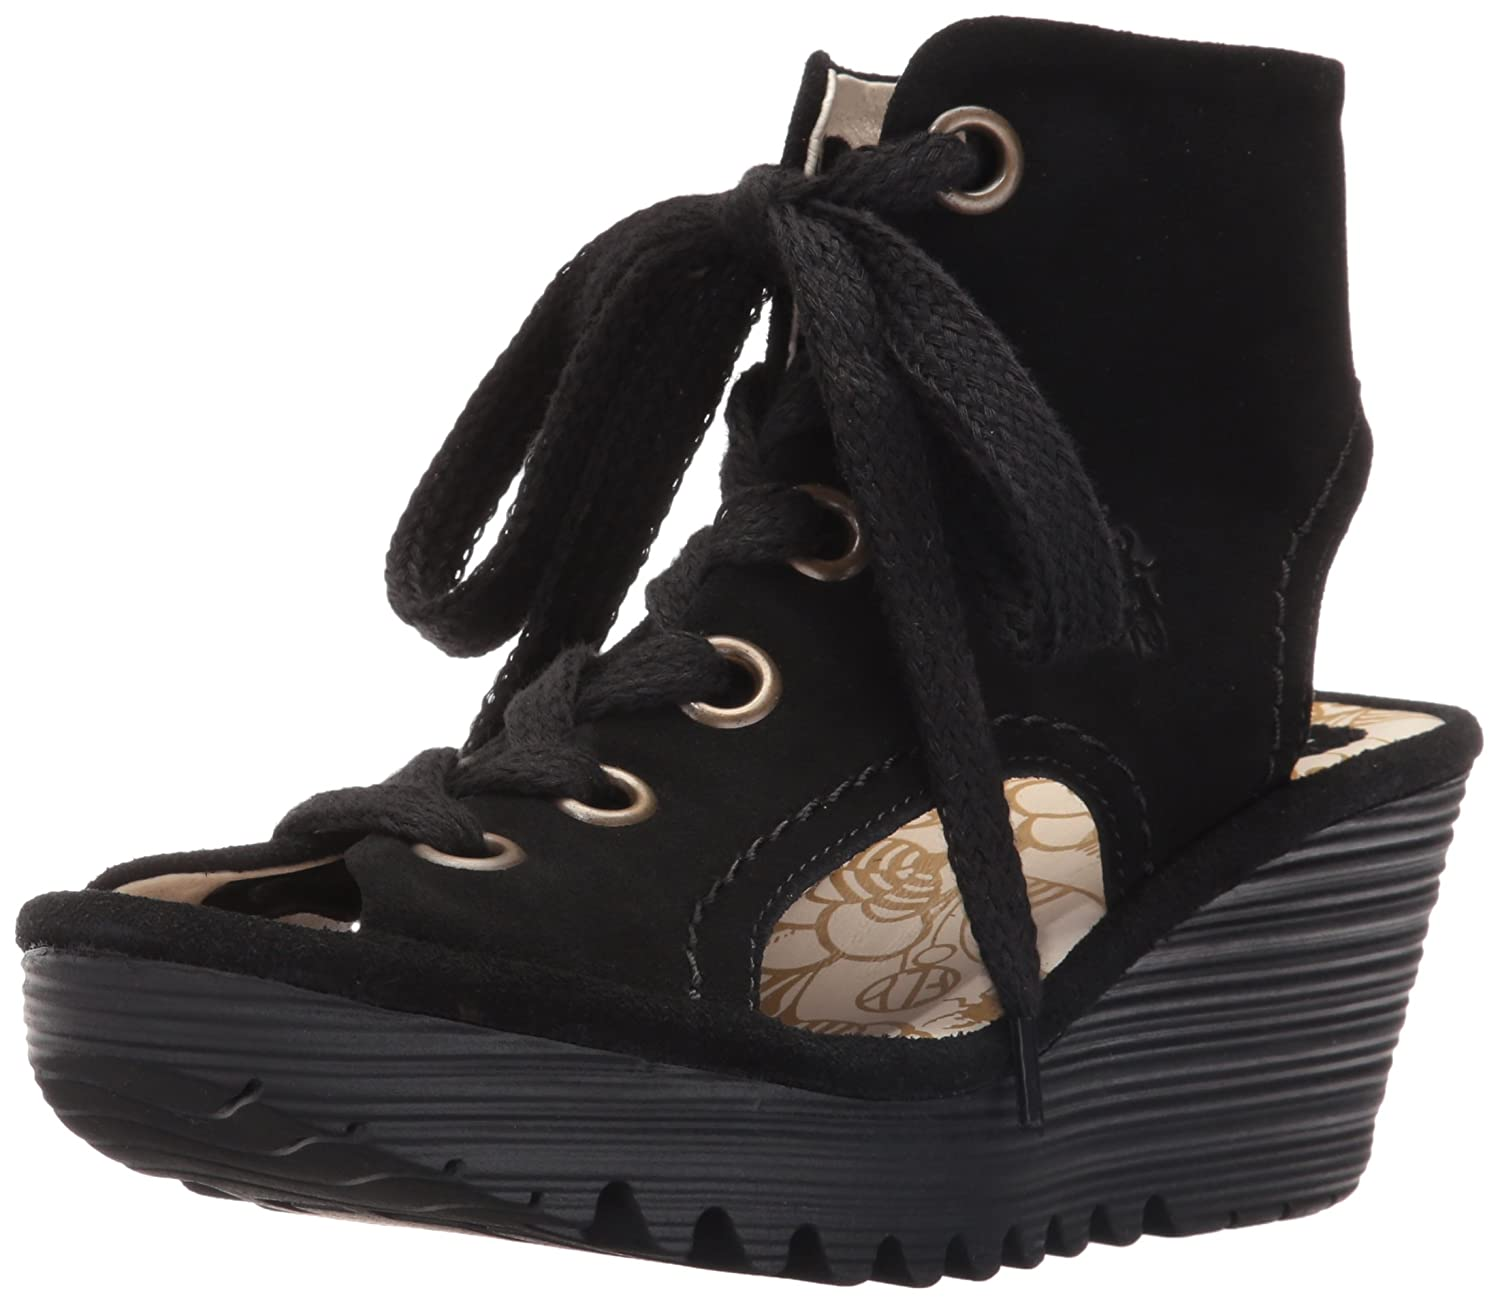 summer walking wedges clouds plus most ecco the comfortable shape comforter outfit mrscasual from and like sandals on adorable are blog denim re ever sale they also these white an pink